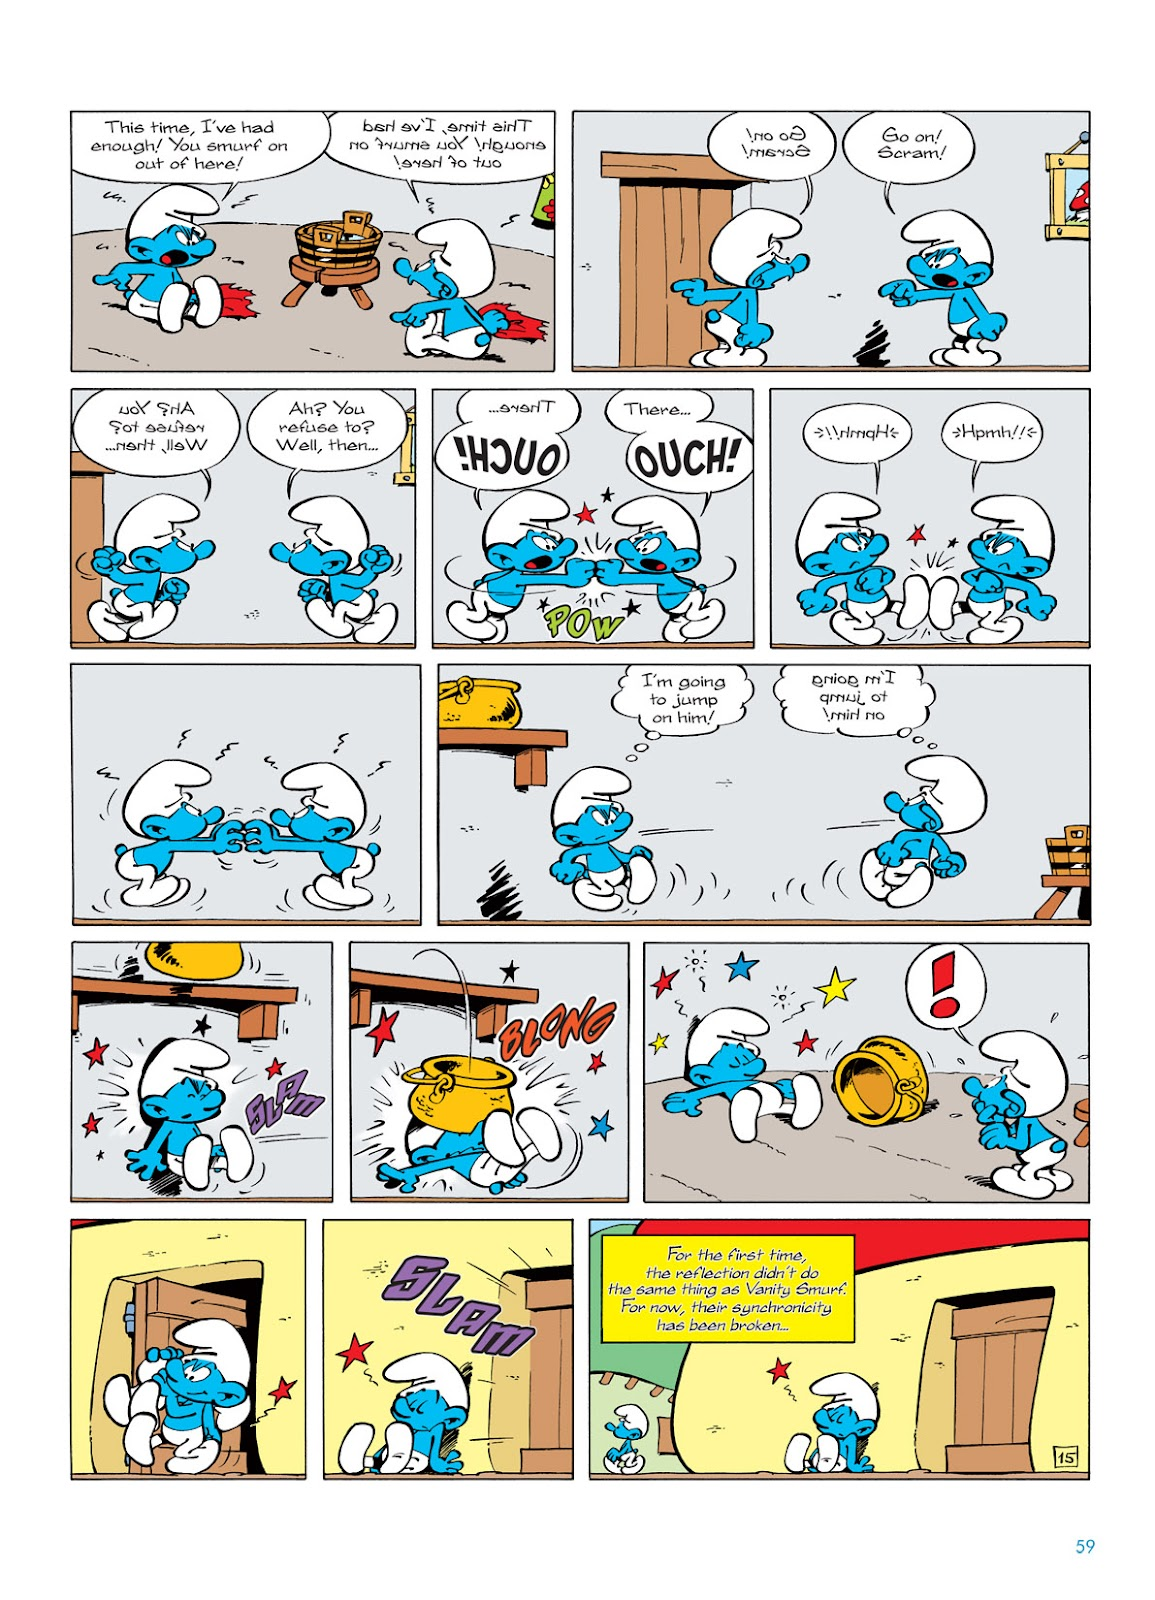 Read online The Smurfs comic -  Issue #5 - 59